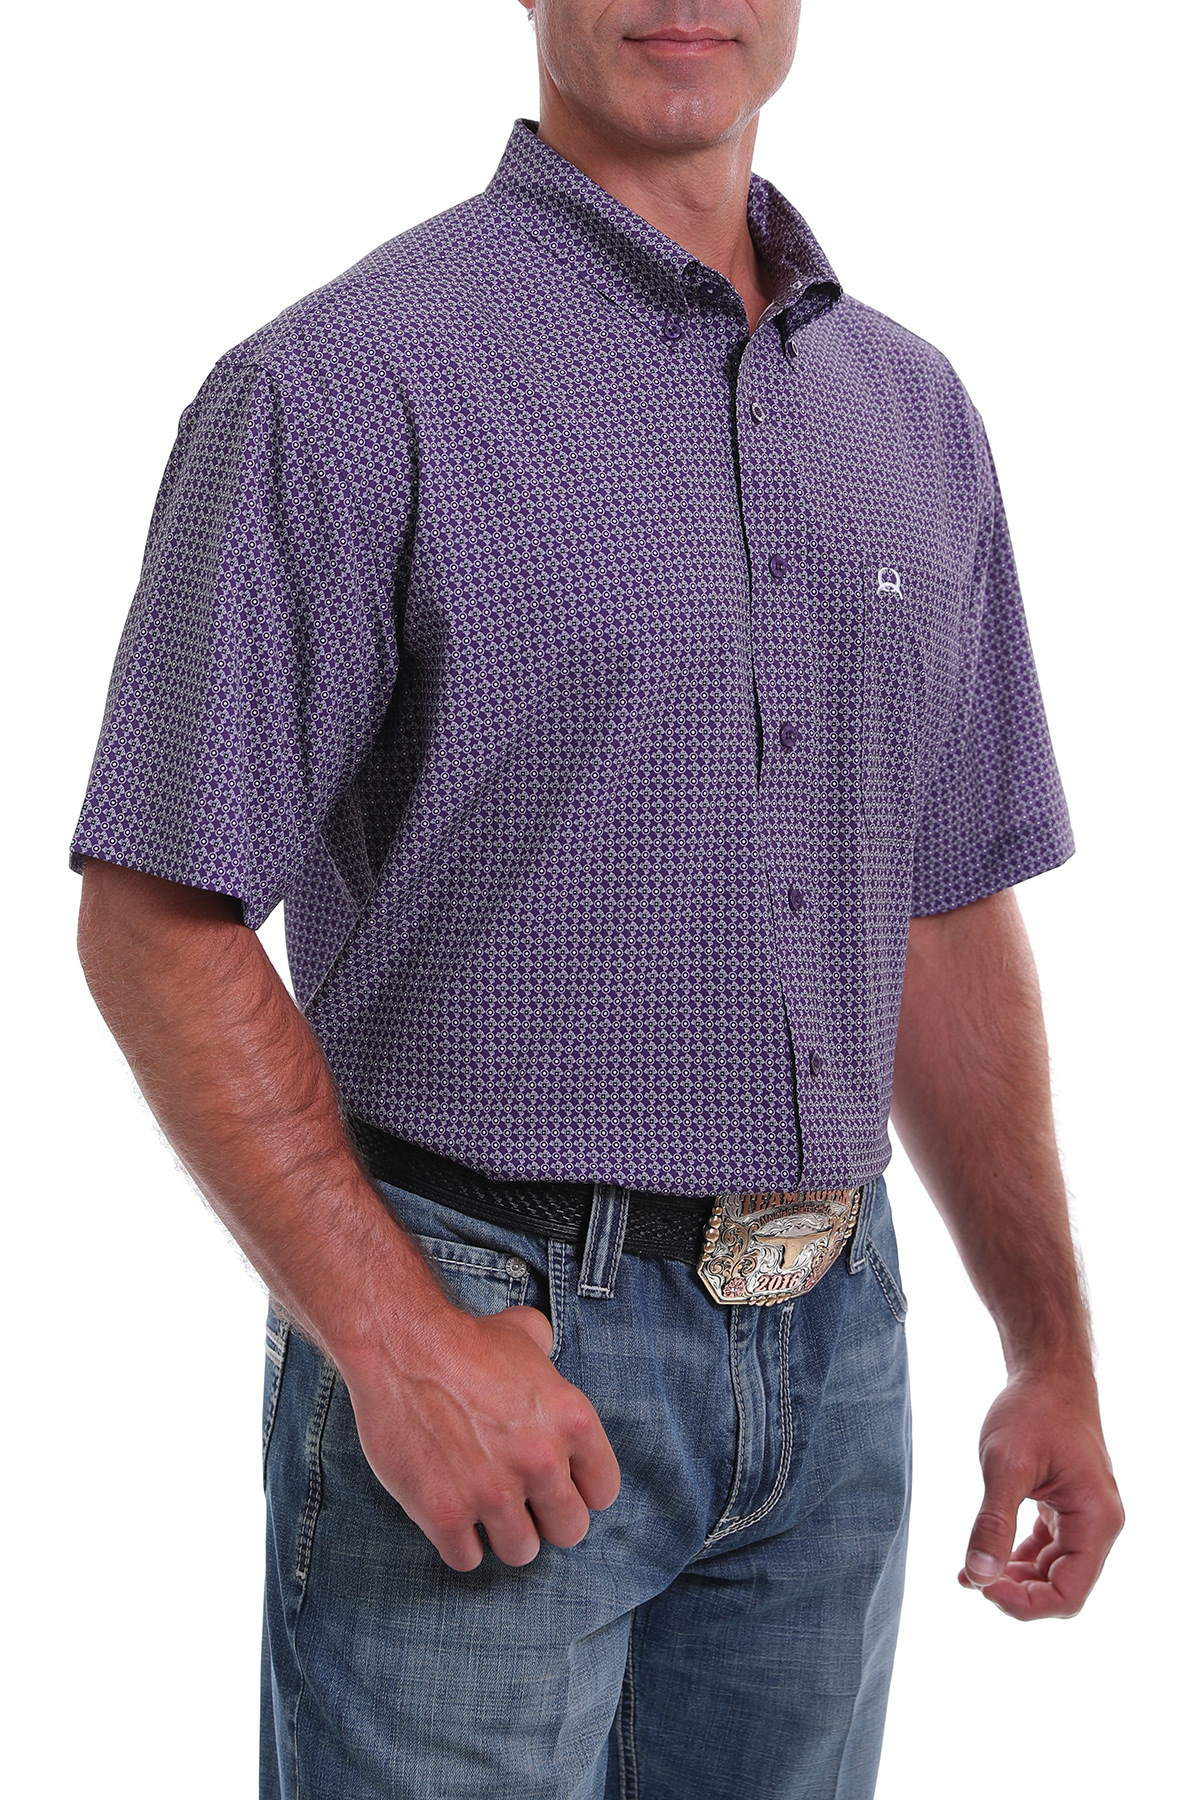 Cinch Men's Short Sleeve Arenaflex